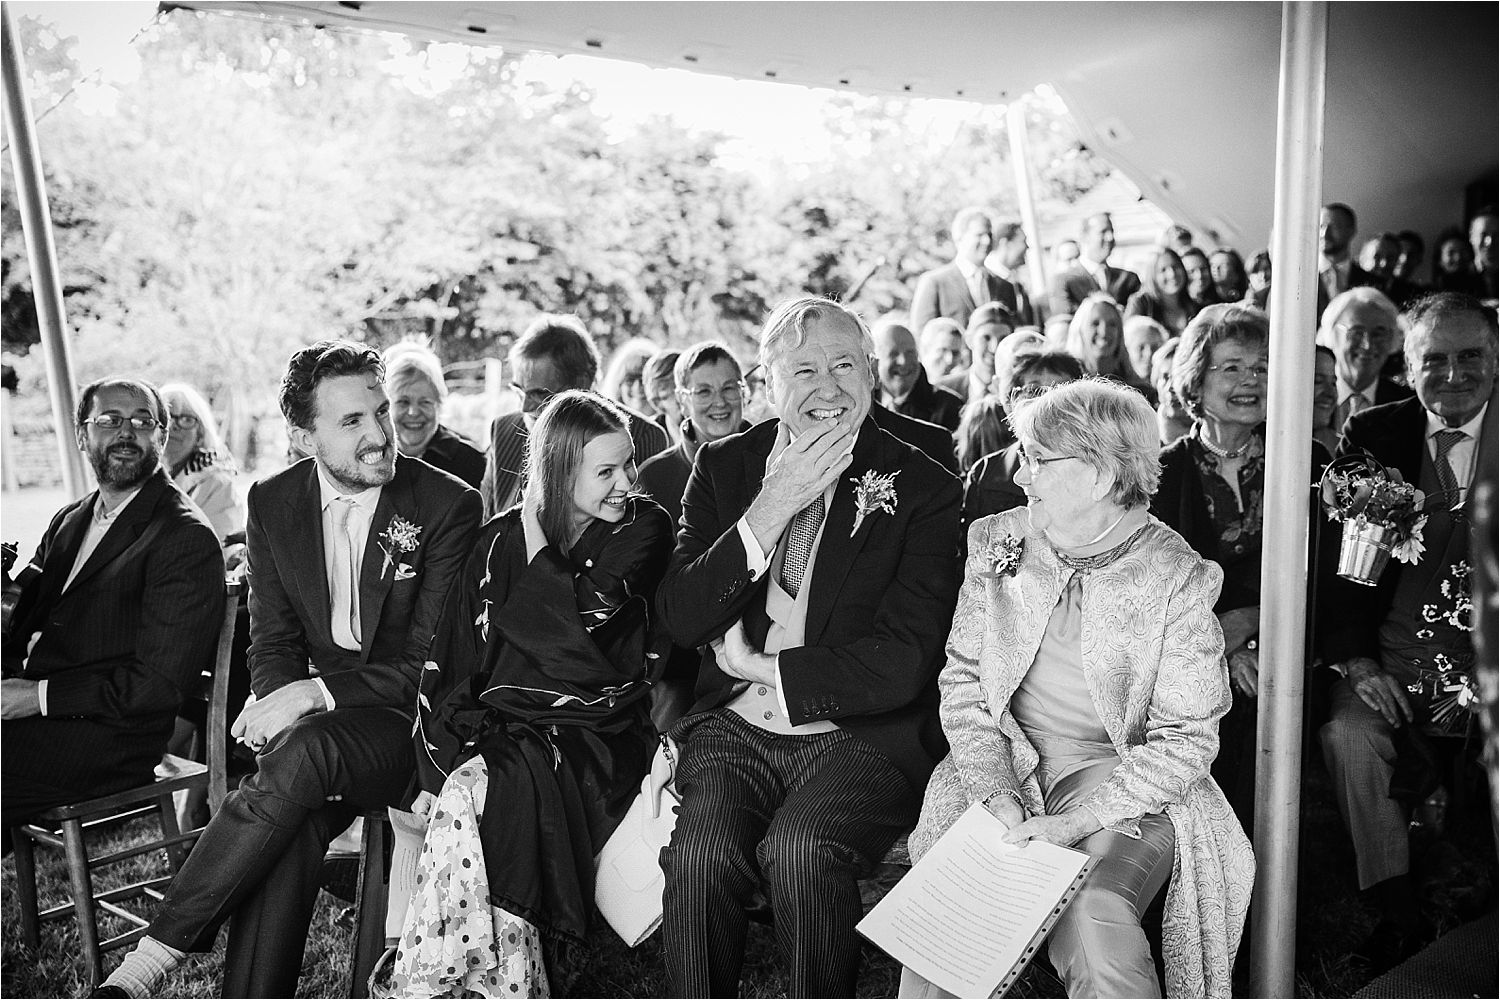 Guests reaction to exchange of vows at Glossop tipi wedding